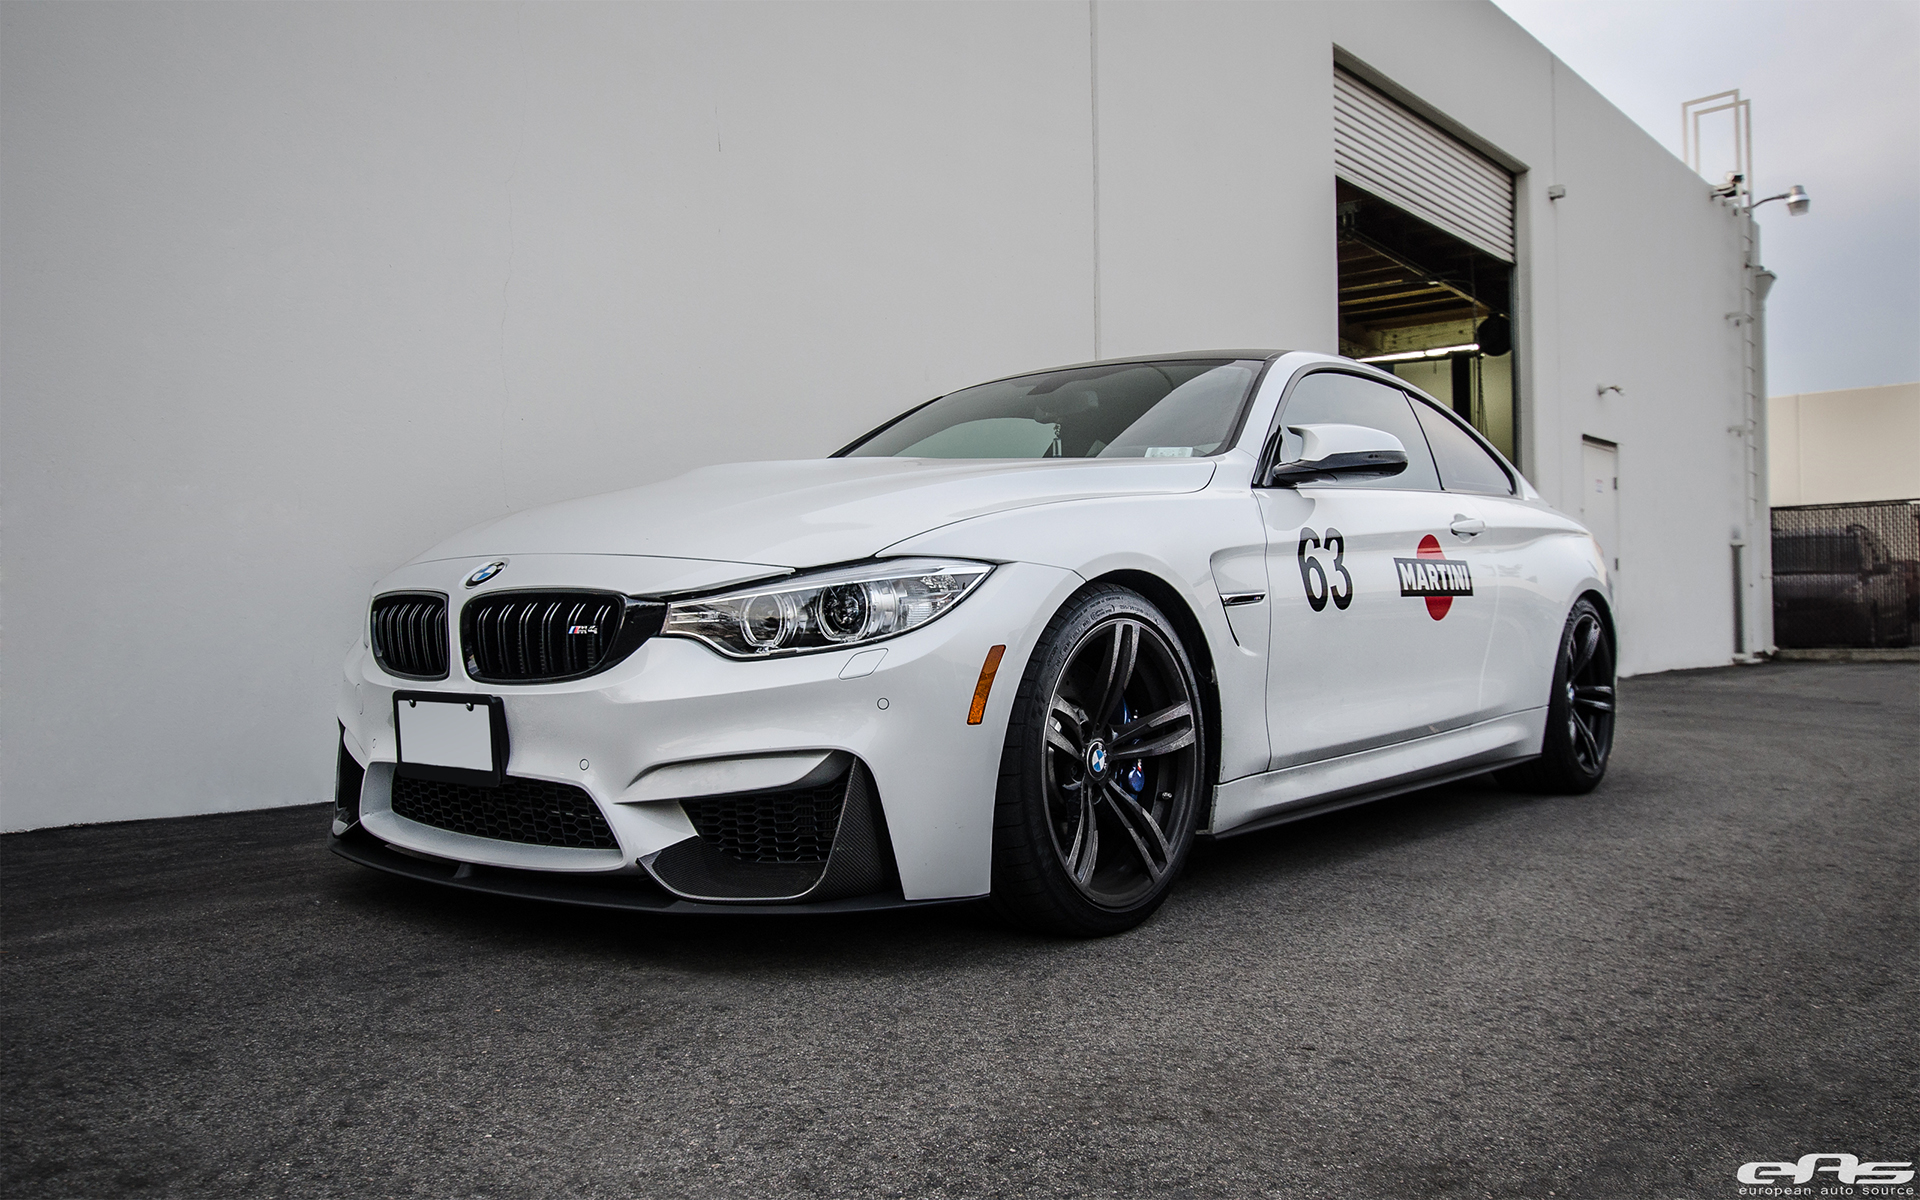 Quite The Package Mineral White Bmw M4 Gets Modded